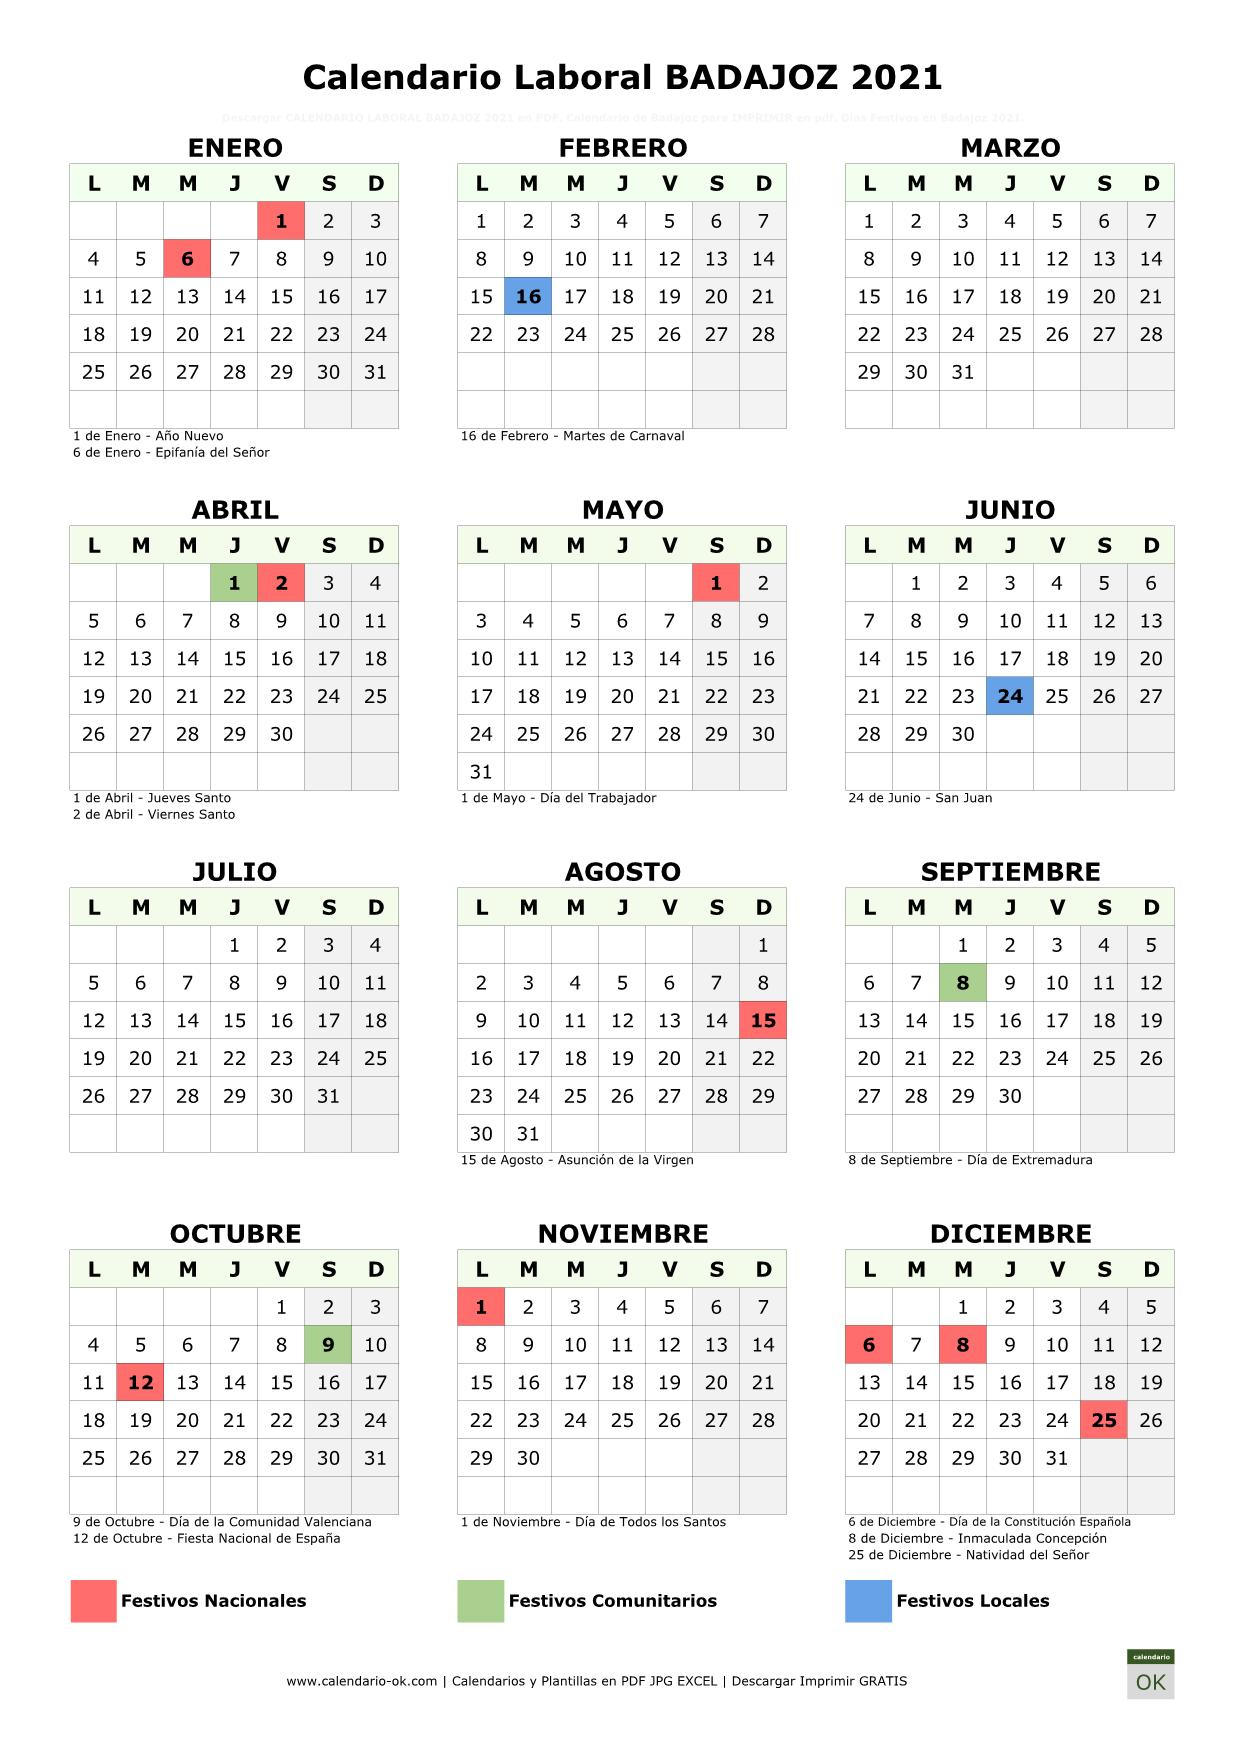 Calendario Laboral Badajoz 2021 vertical